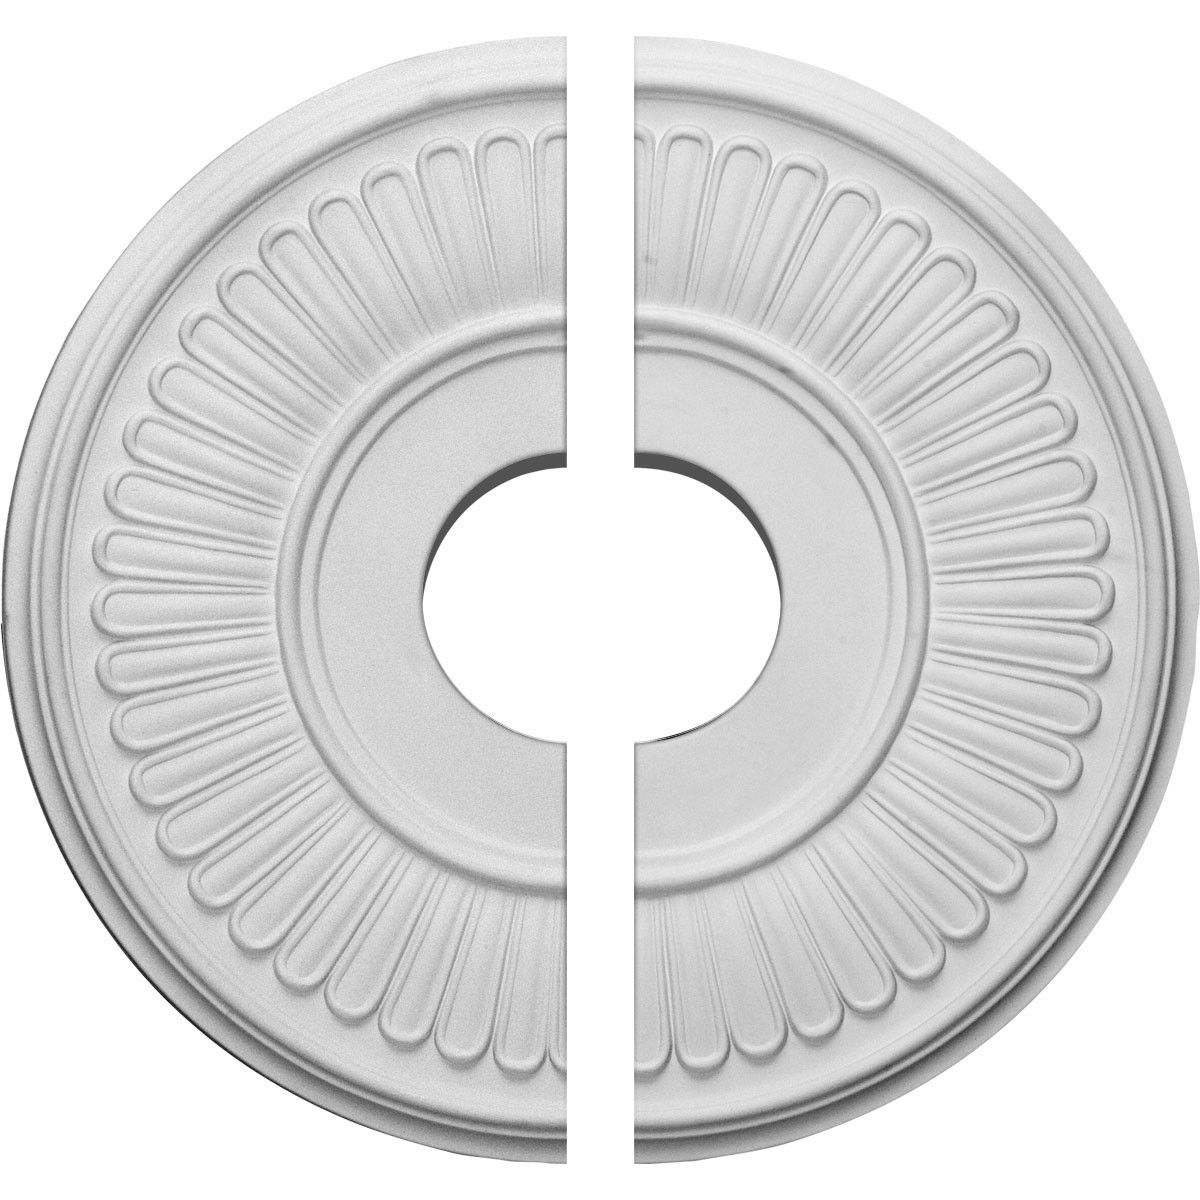 """EM-CM15BE2 - 15 3/4""""OD x 3 7/8""""ID x 3/4""""P Berkshire Ceiling Medallion, Two Piece (Fits Canopies up to 7"""")"""